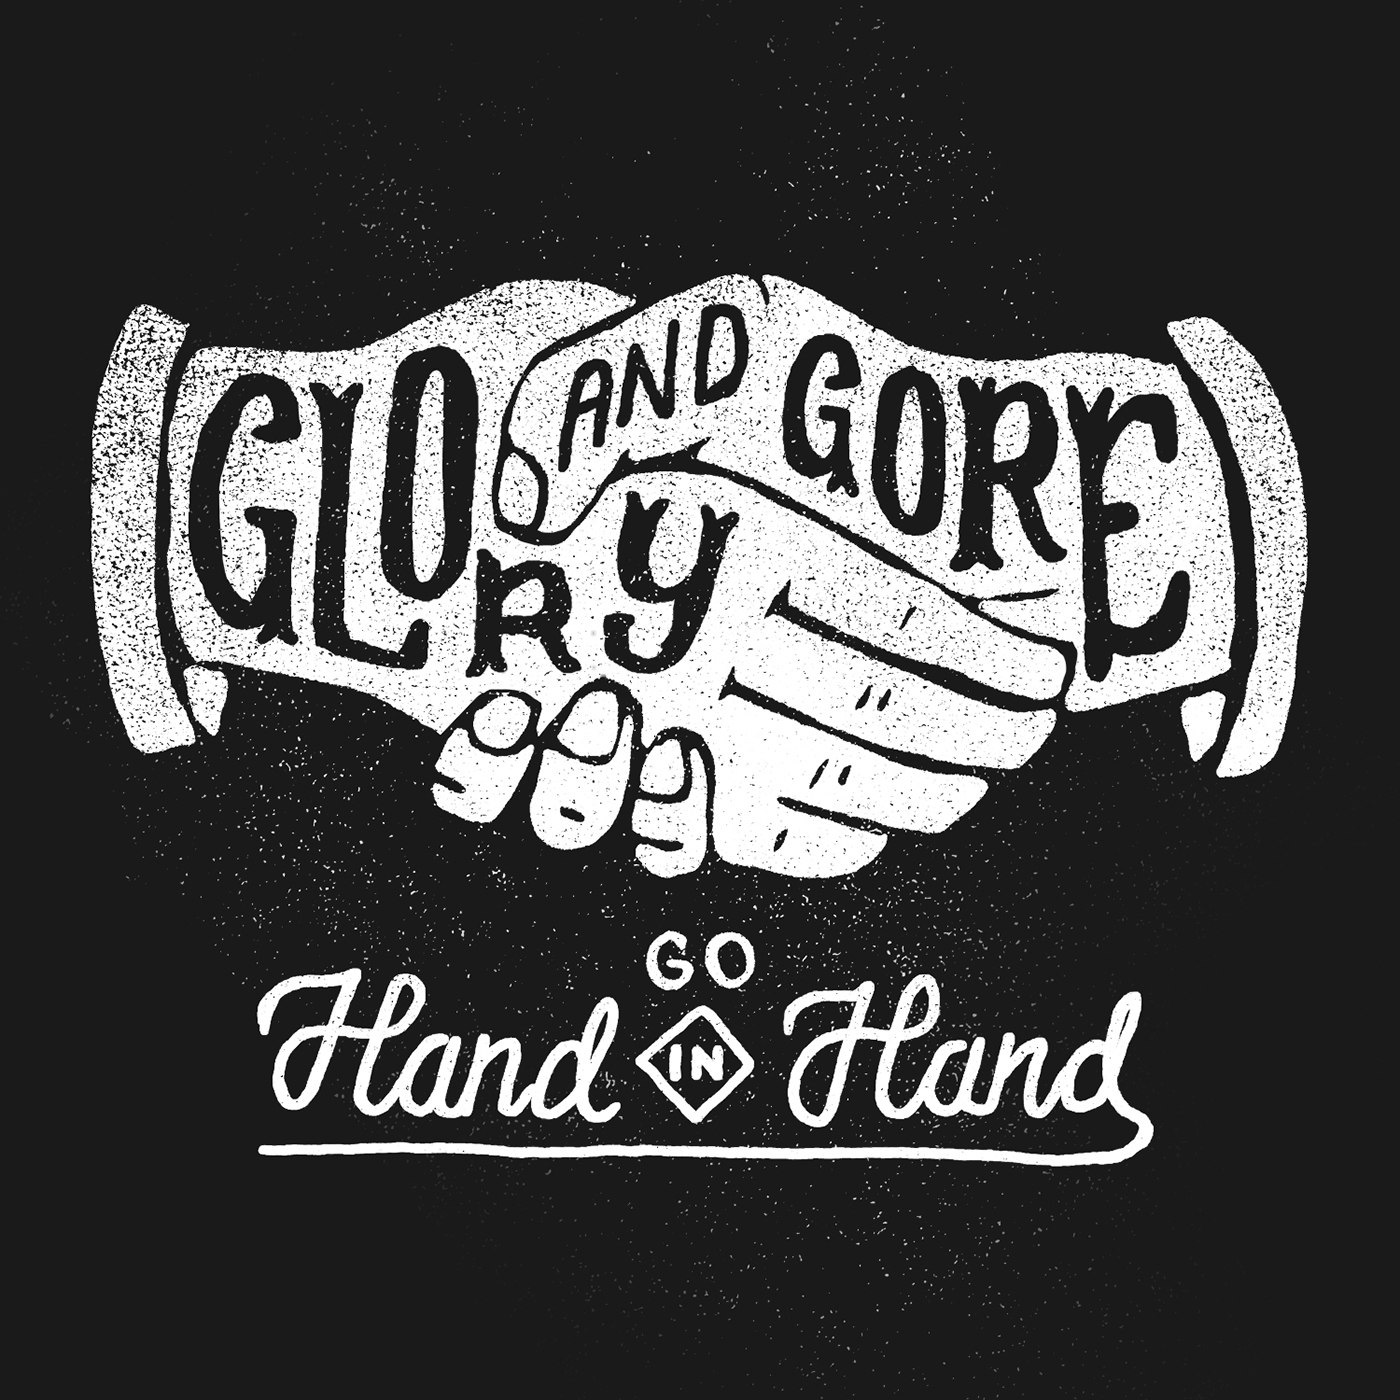 Glory and Gore - LORDE on Behance